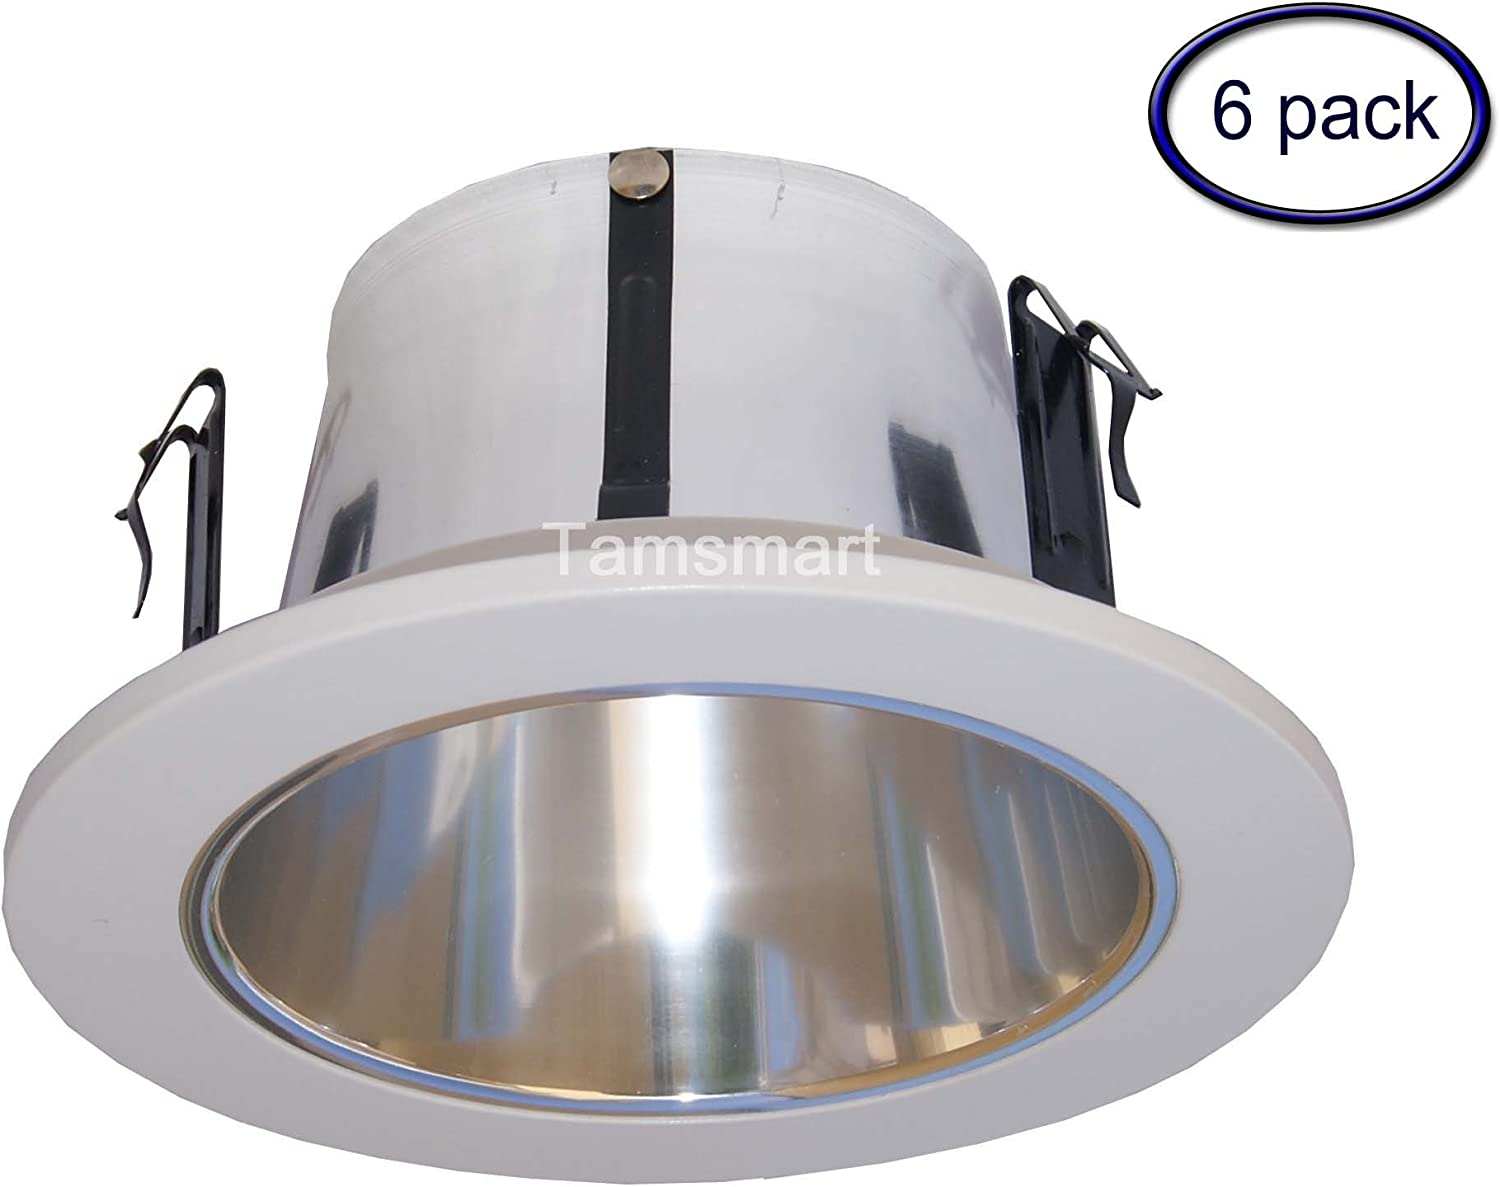 6 Trim Reflector Cone White with Clear Specular Reflector Cone HALO 426